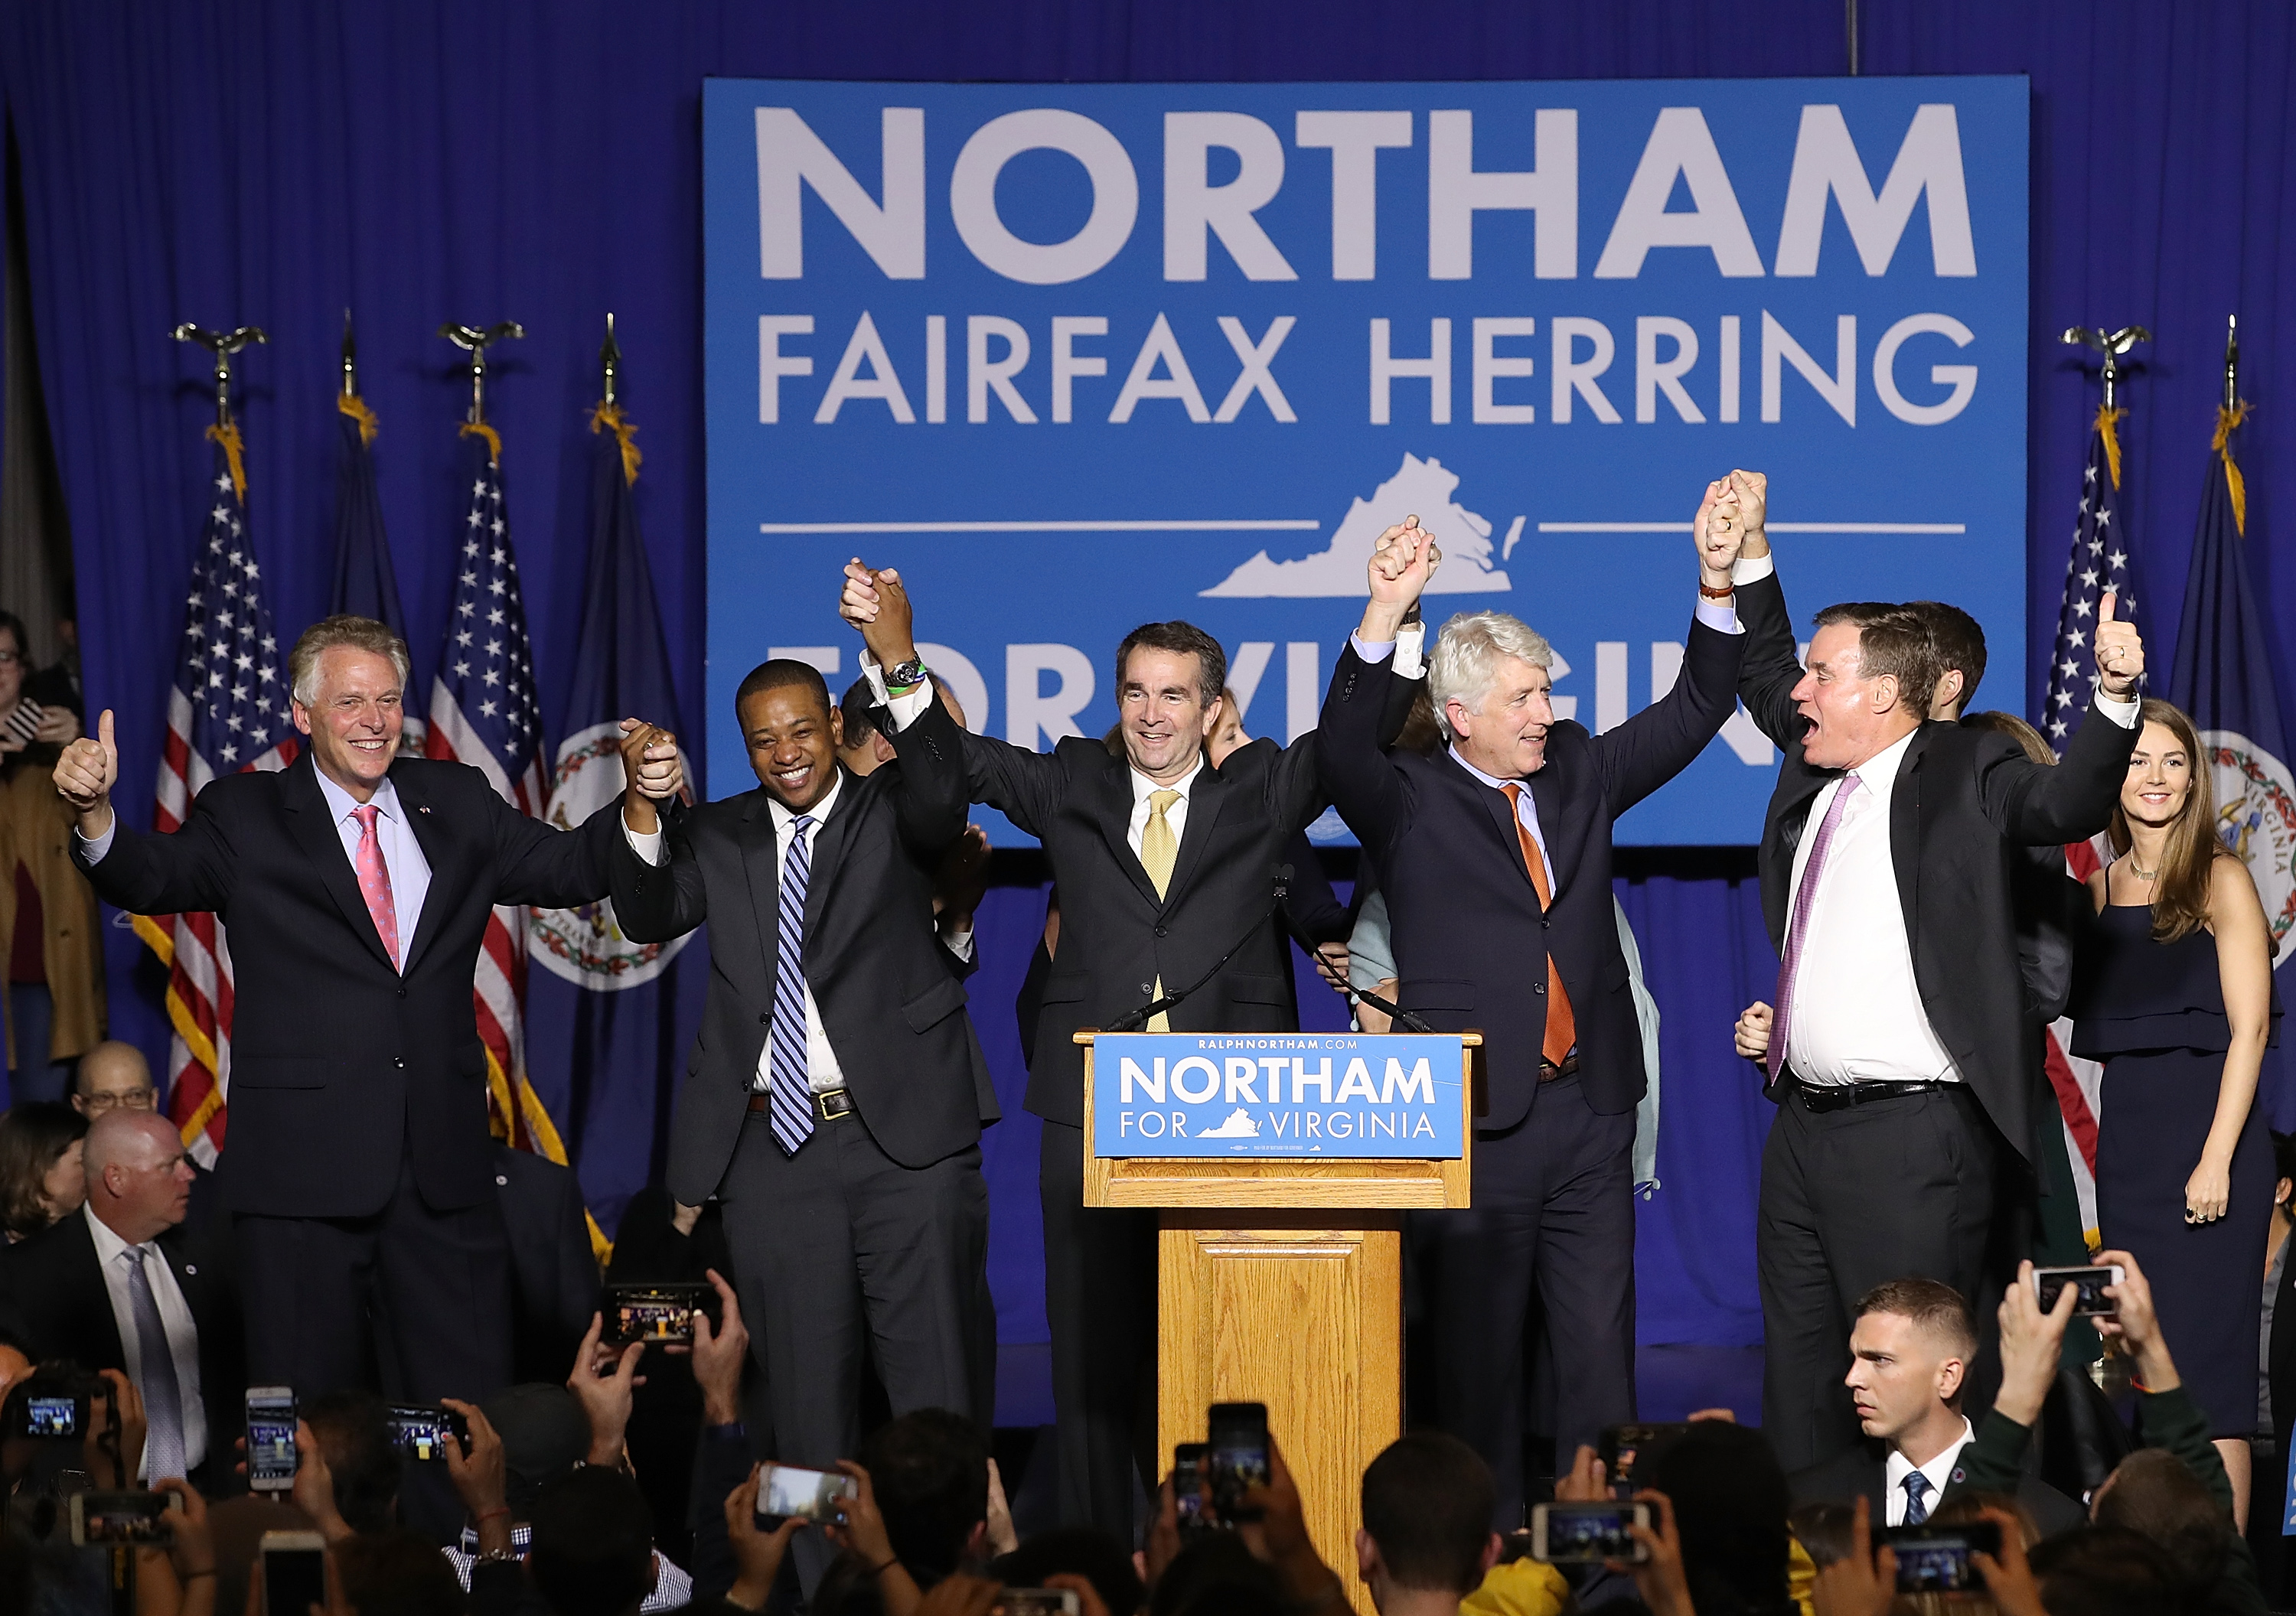 Gov.-elect Ralph Northam, center links arms with former Gov. Terry McAuliffe, Lt. Gov.-elect Justin Fairfax, Attorney General-elect Mark Herring, and U.S. Sen. Mark Warner (D-VA) at an election night rally November 7, 2017, in Fairfax, Virginia.